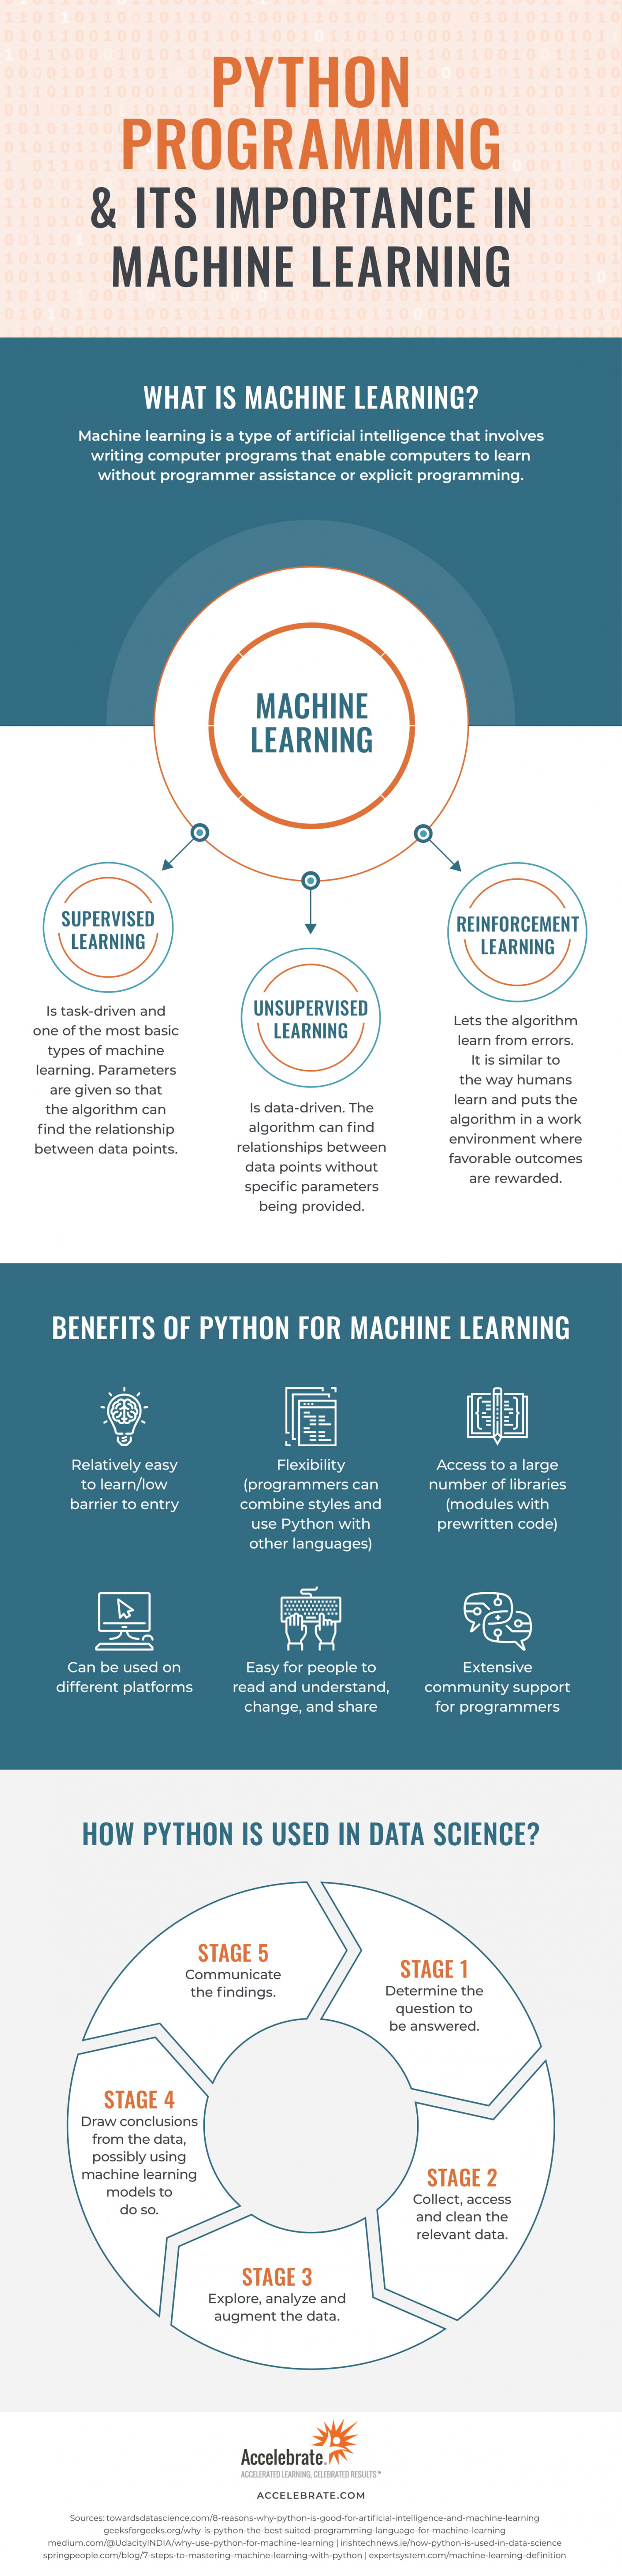 Python Programming and Its Importance In Machine Learning Infographic